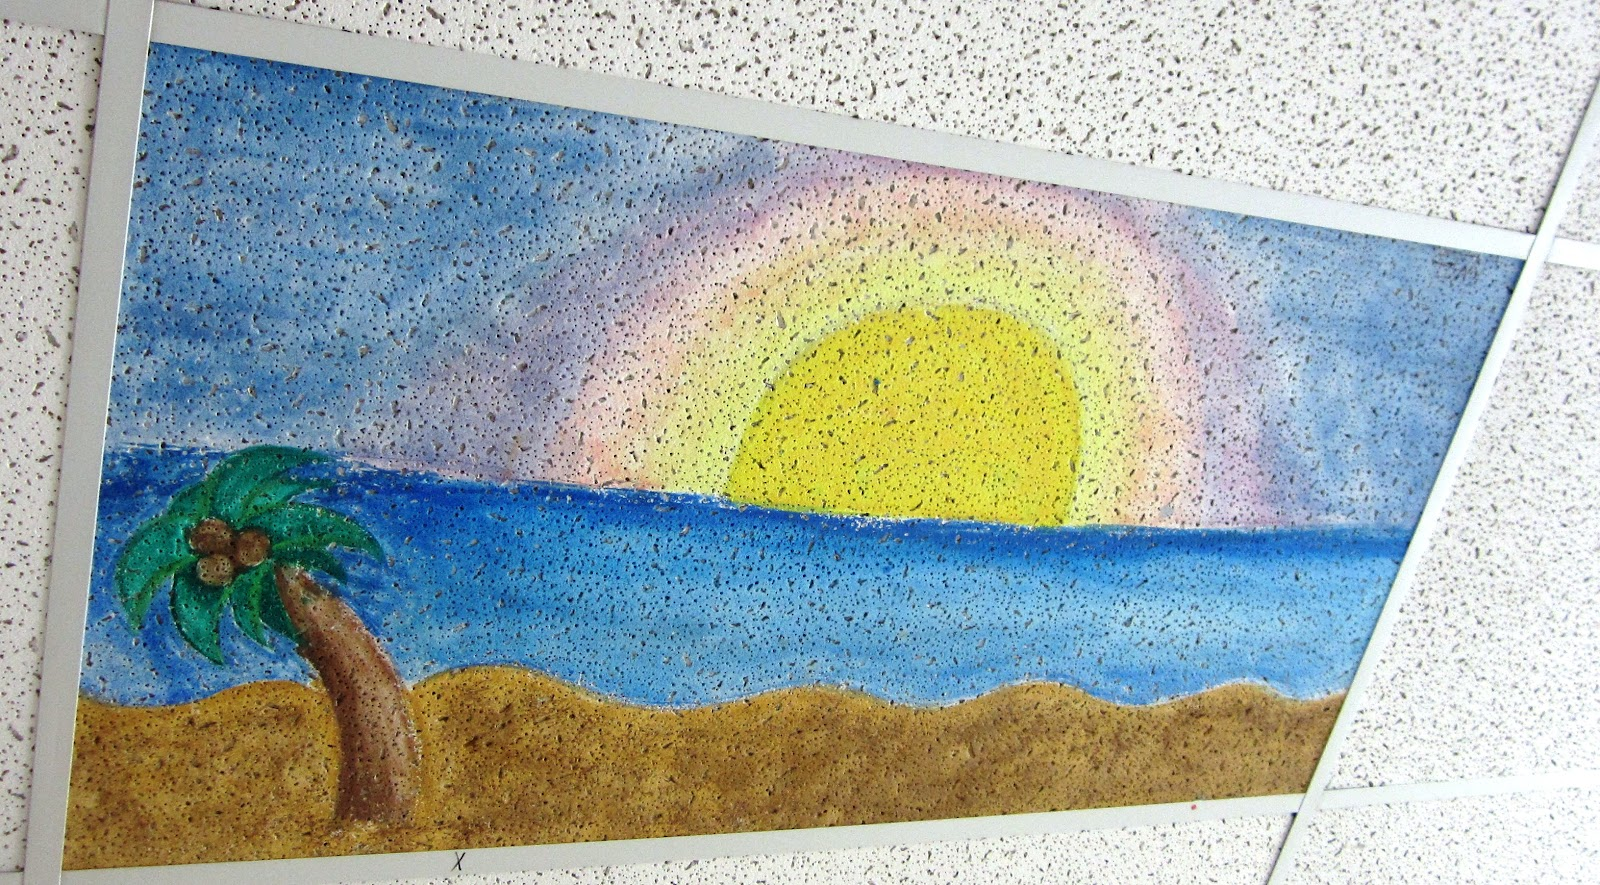 Ceiling tile art customize your classroom i want to be a super ceiling tile art customize your classroom dailygadgetfo Images